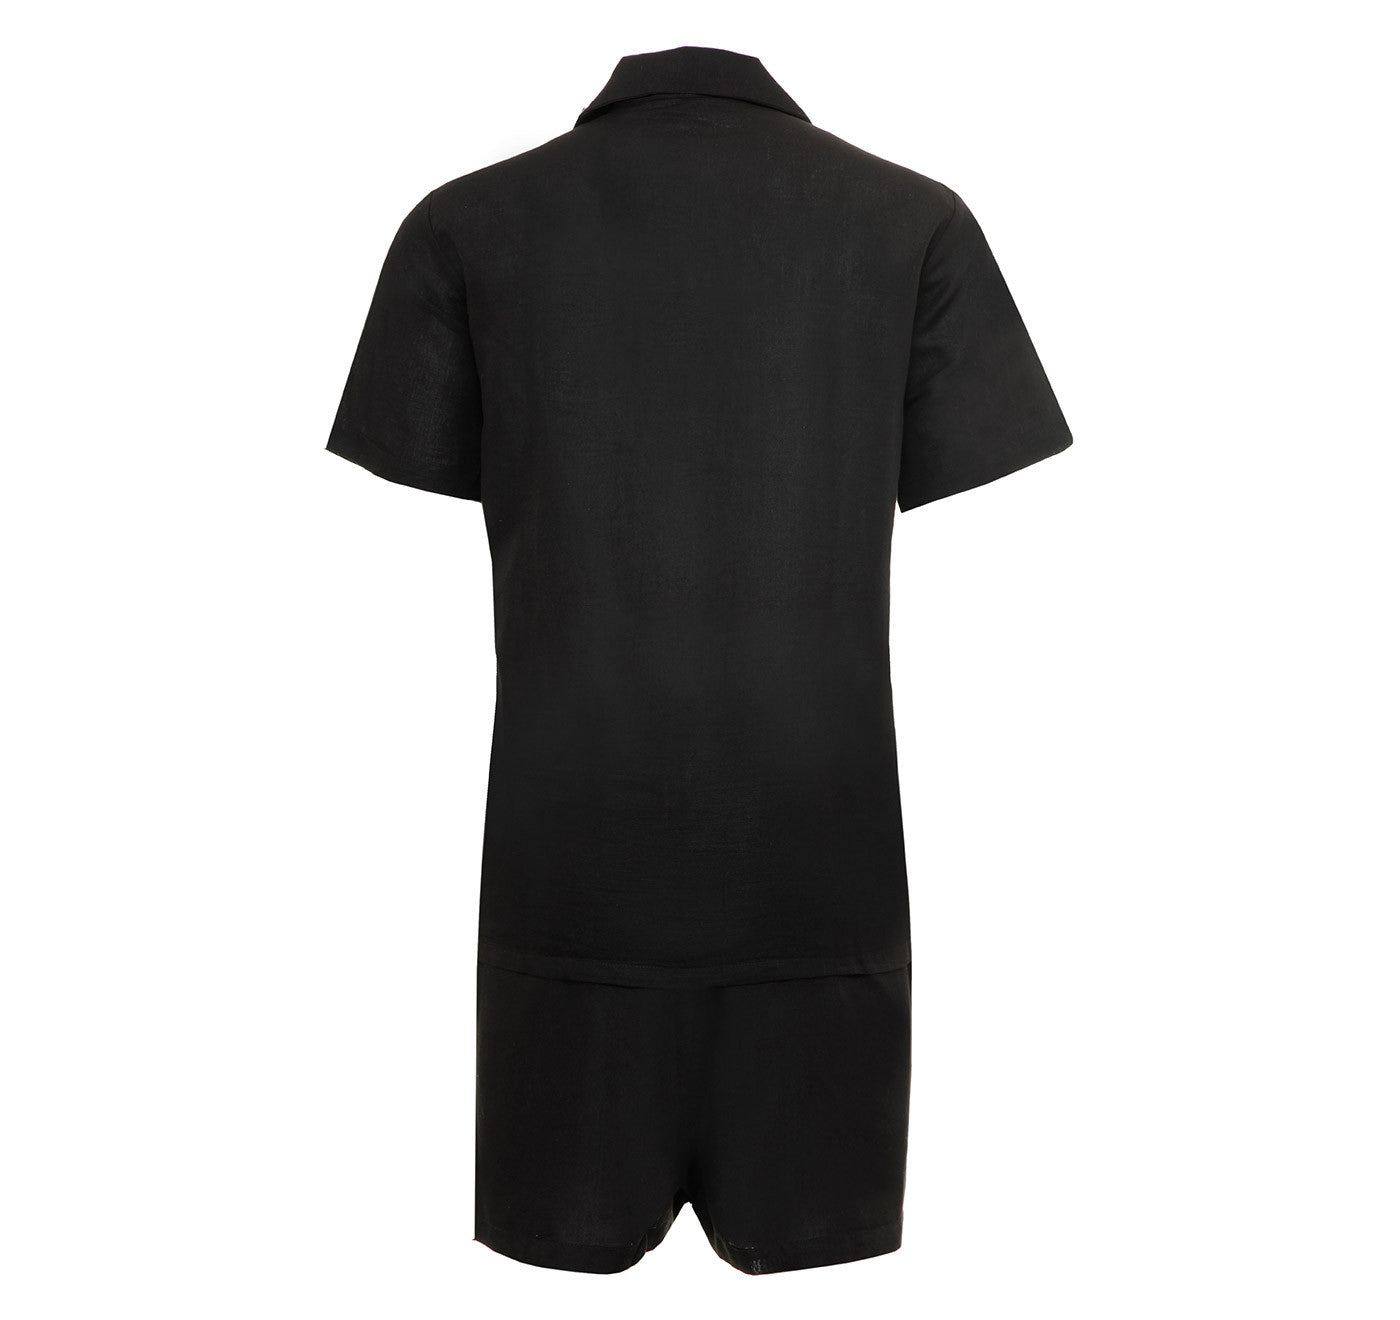 Mens Black Short Set Linen Pyjamas, Linen Flex Fabric, Comfort Fit, Gift Boxed, rear view